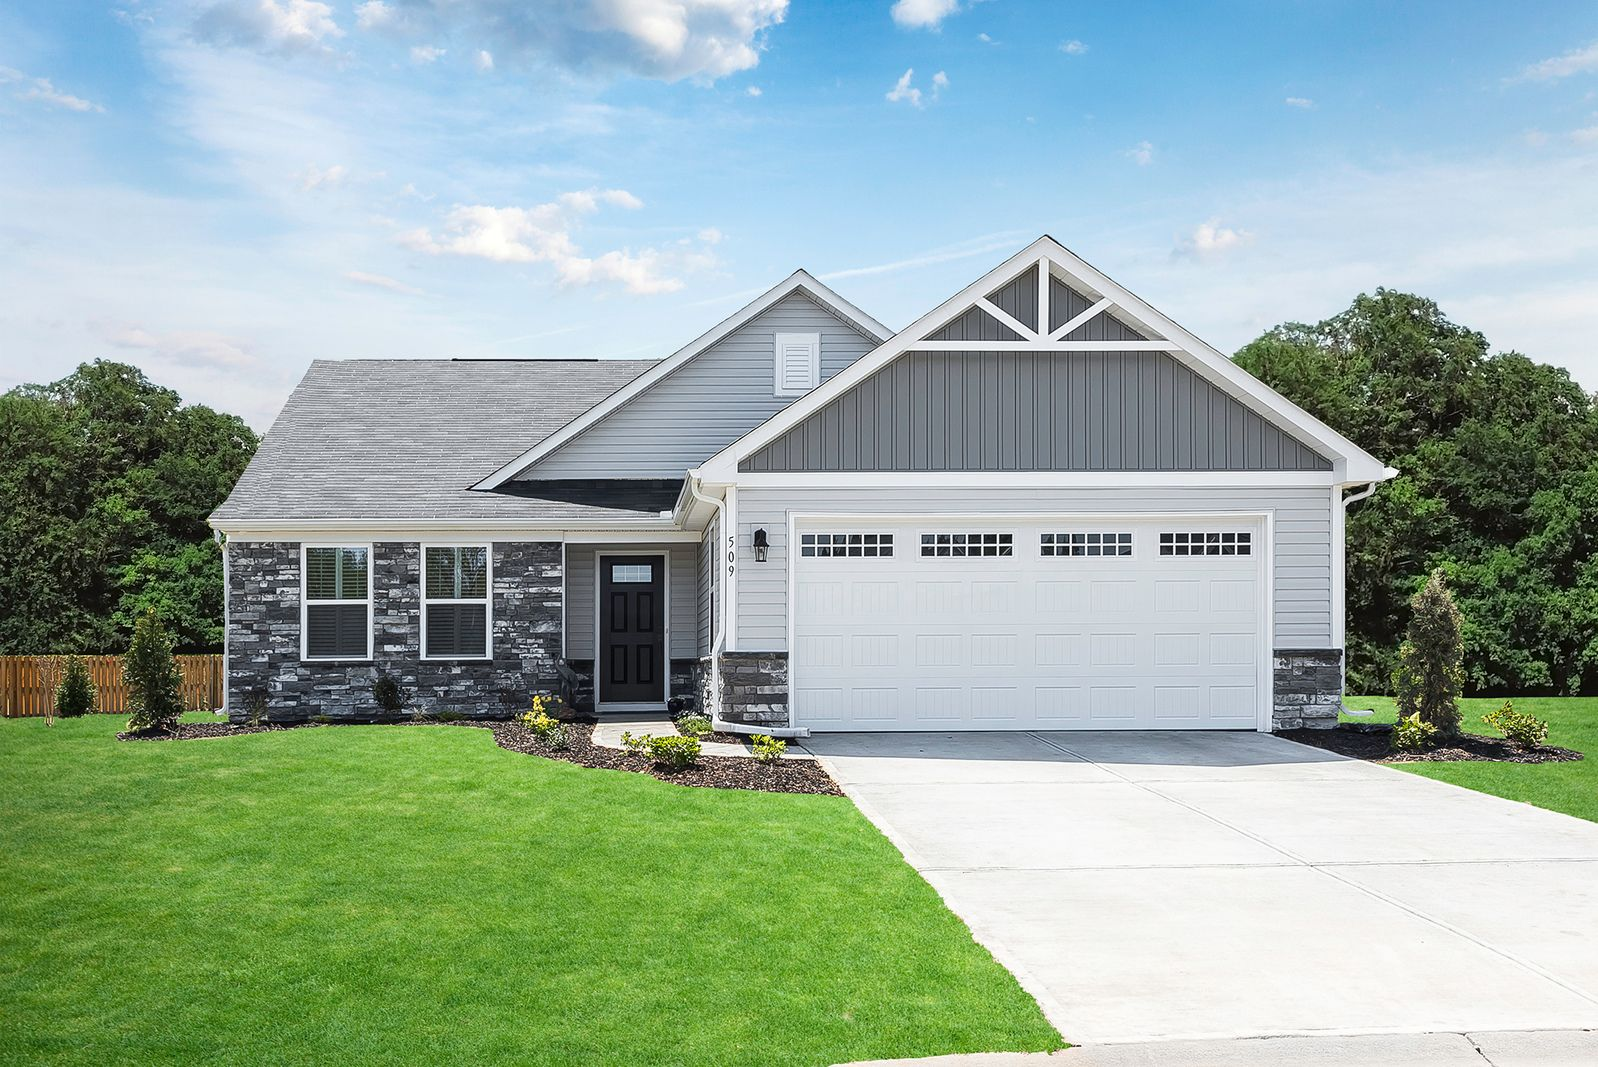 PENDLETON - COMING SOON TO CAROLINE COUNTY FROM THE UPPER $200S!:Affordable one-level living in a resort-style community with a golf course, located between Fredericksburg & Richmond!Join the VIP List today.